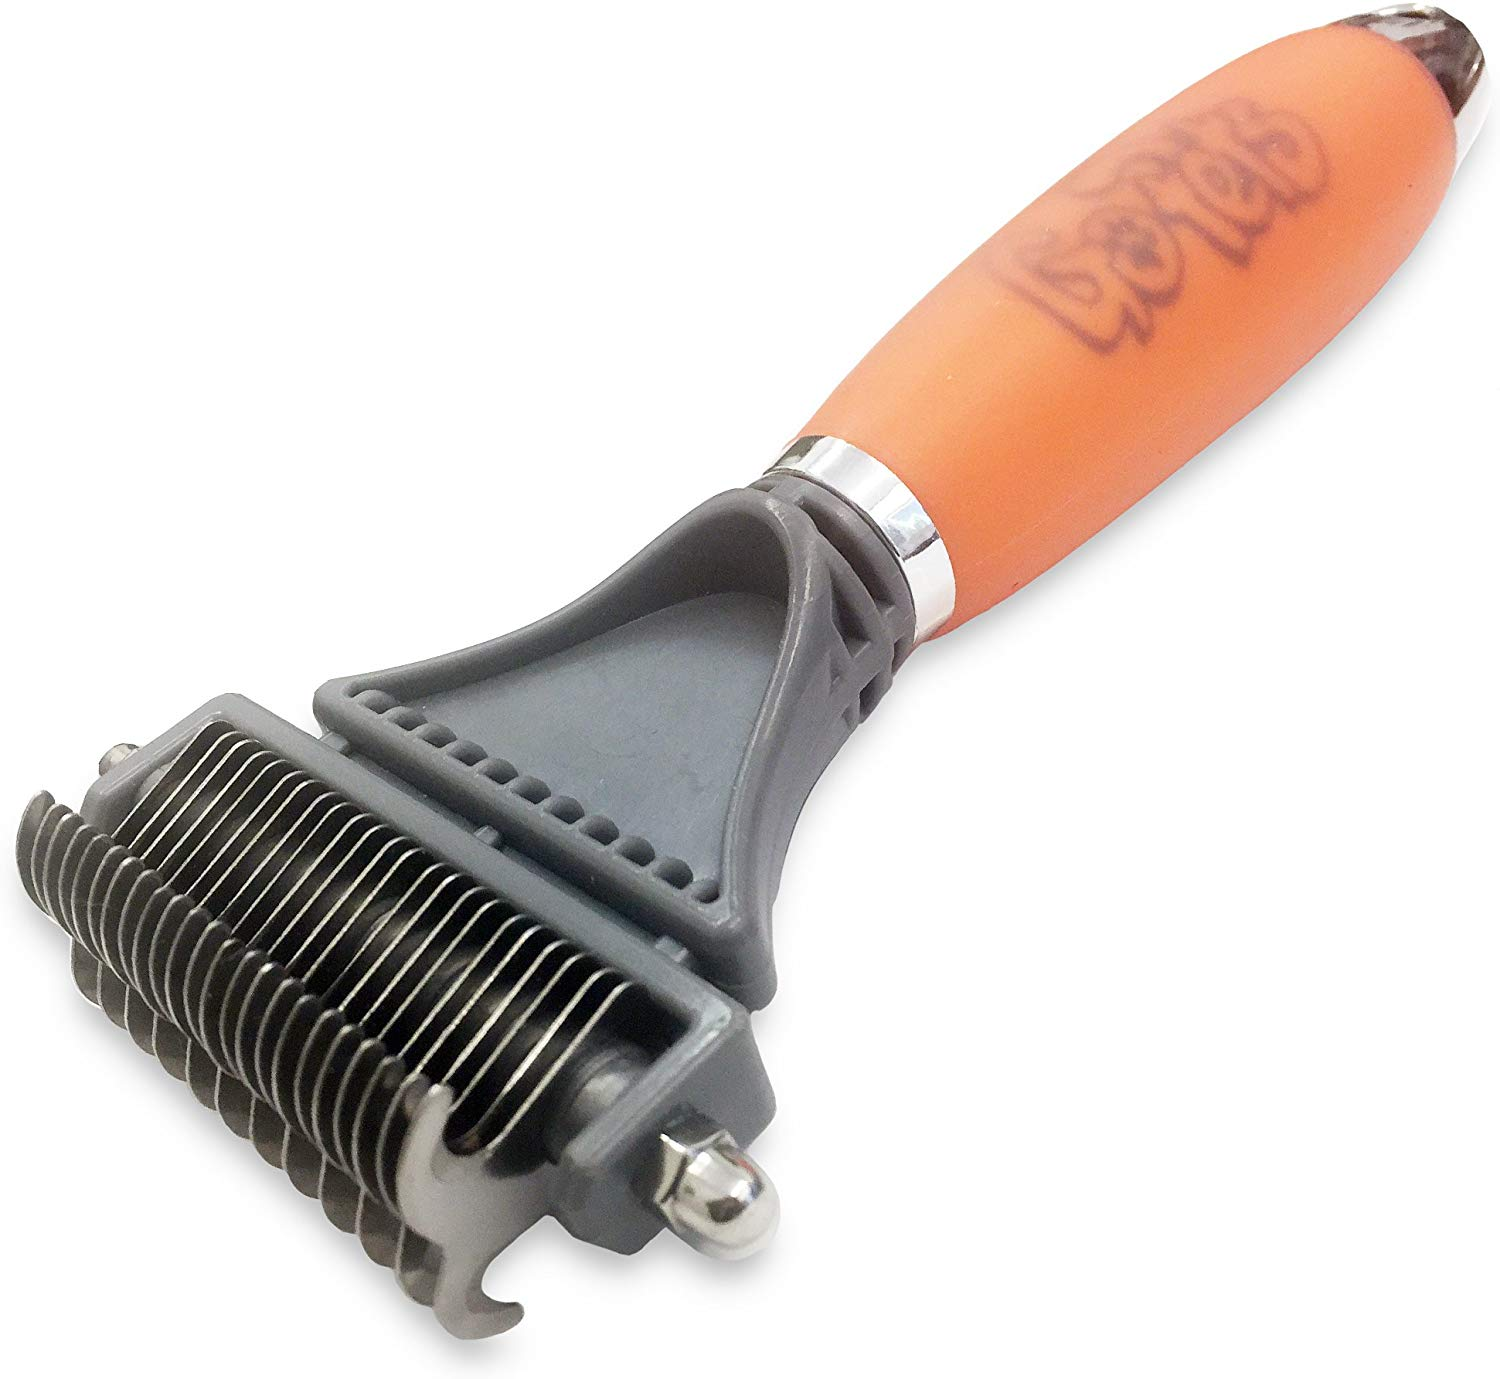 GoPets 2 Sided Professional Grooming tool